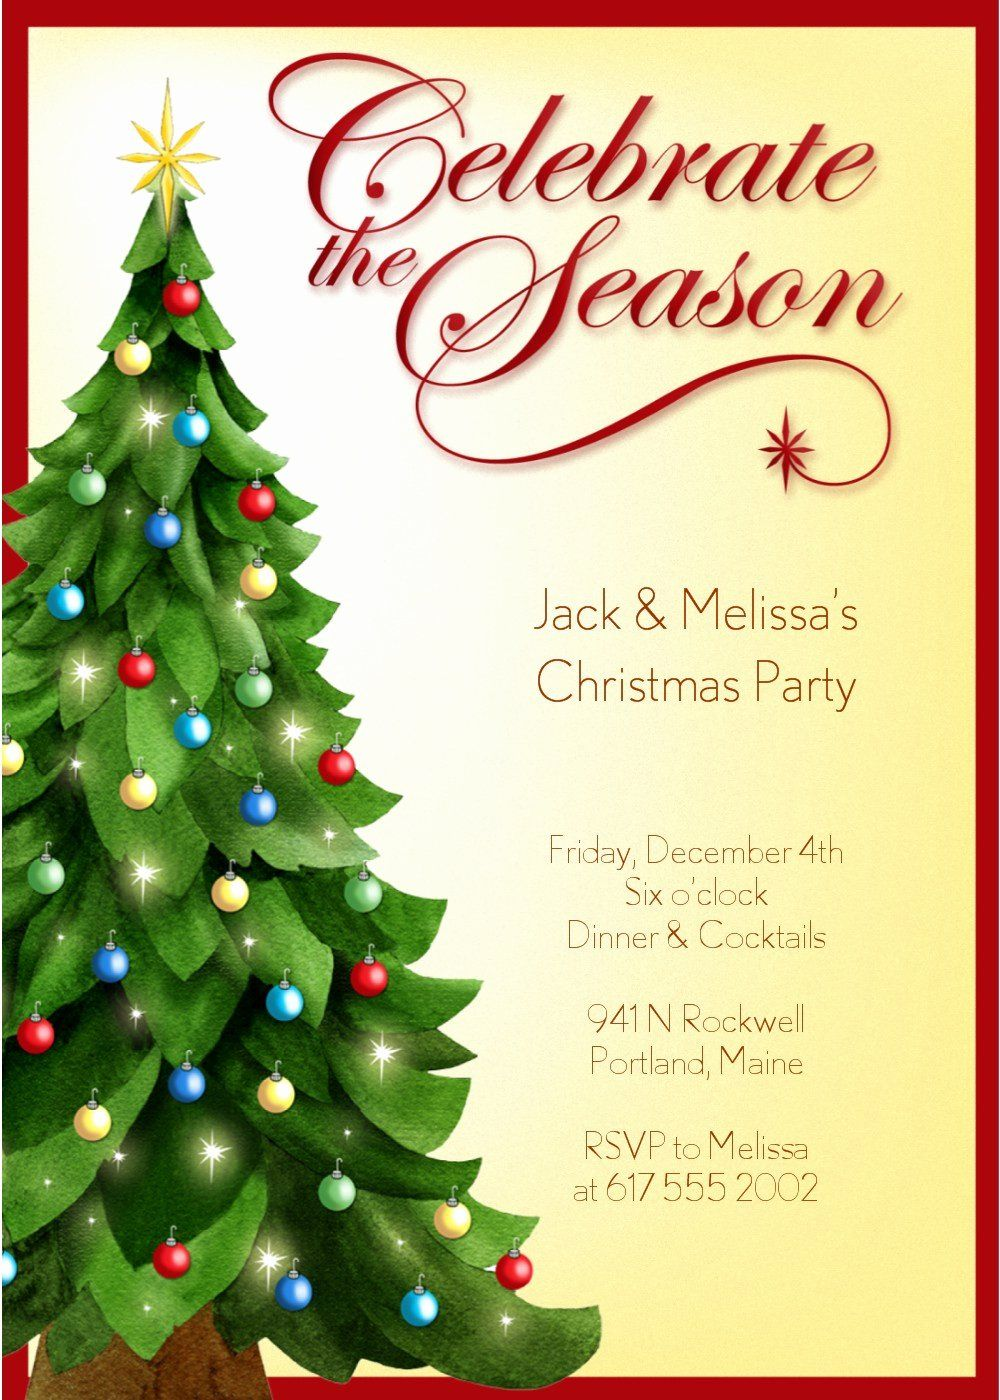 Free Christmas Party Invitations Template Inspirational Christmas Invitations Template Free Christmas Invitation Templates Christmas Party Invitation Template Free downloadable christmas invitation templates